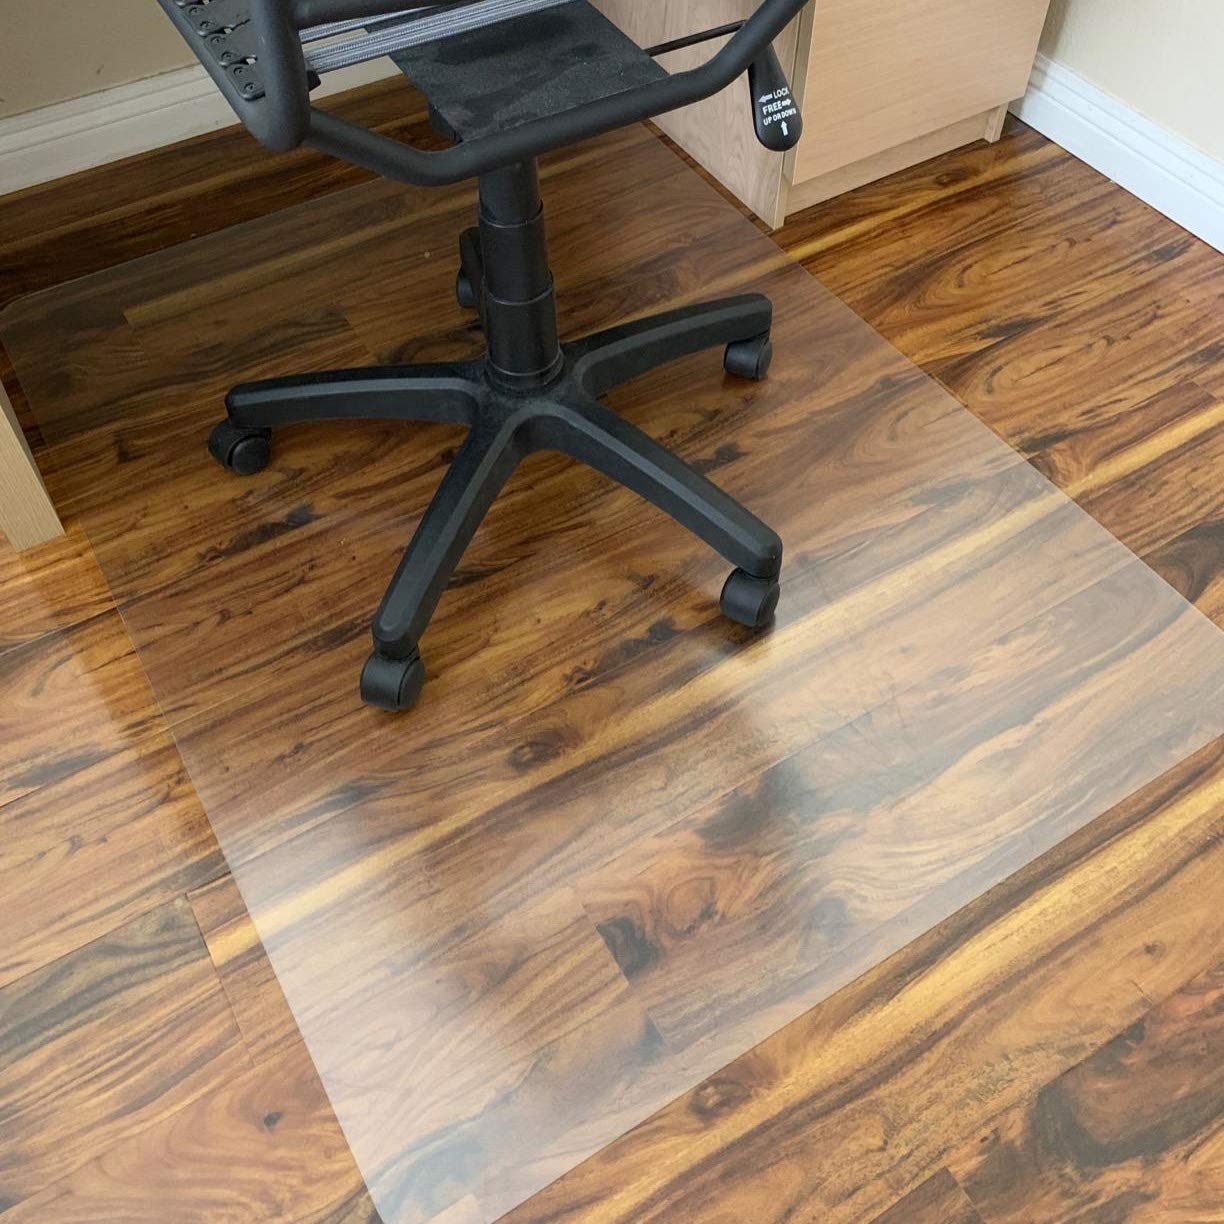 Polycarbonate Office Chair Mat for Hardwood Floor, Floor Mat for Office Chair(Rolling Chairs)-Desk Mat&Office Mat for Hardwood Floor-Sturdy&Durable, Immediately Flat When Taken Out of Box: 36''x48''